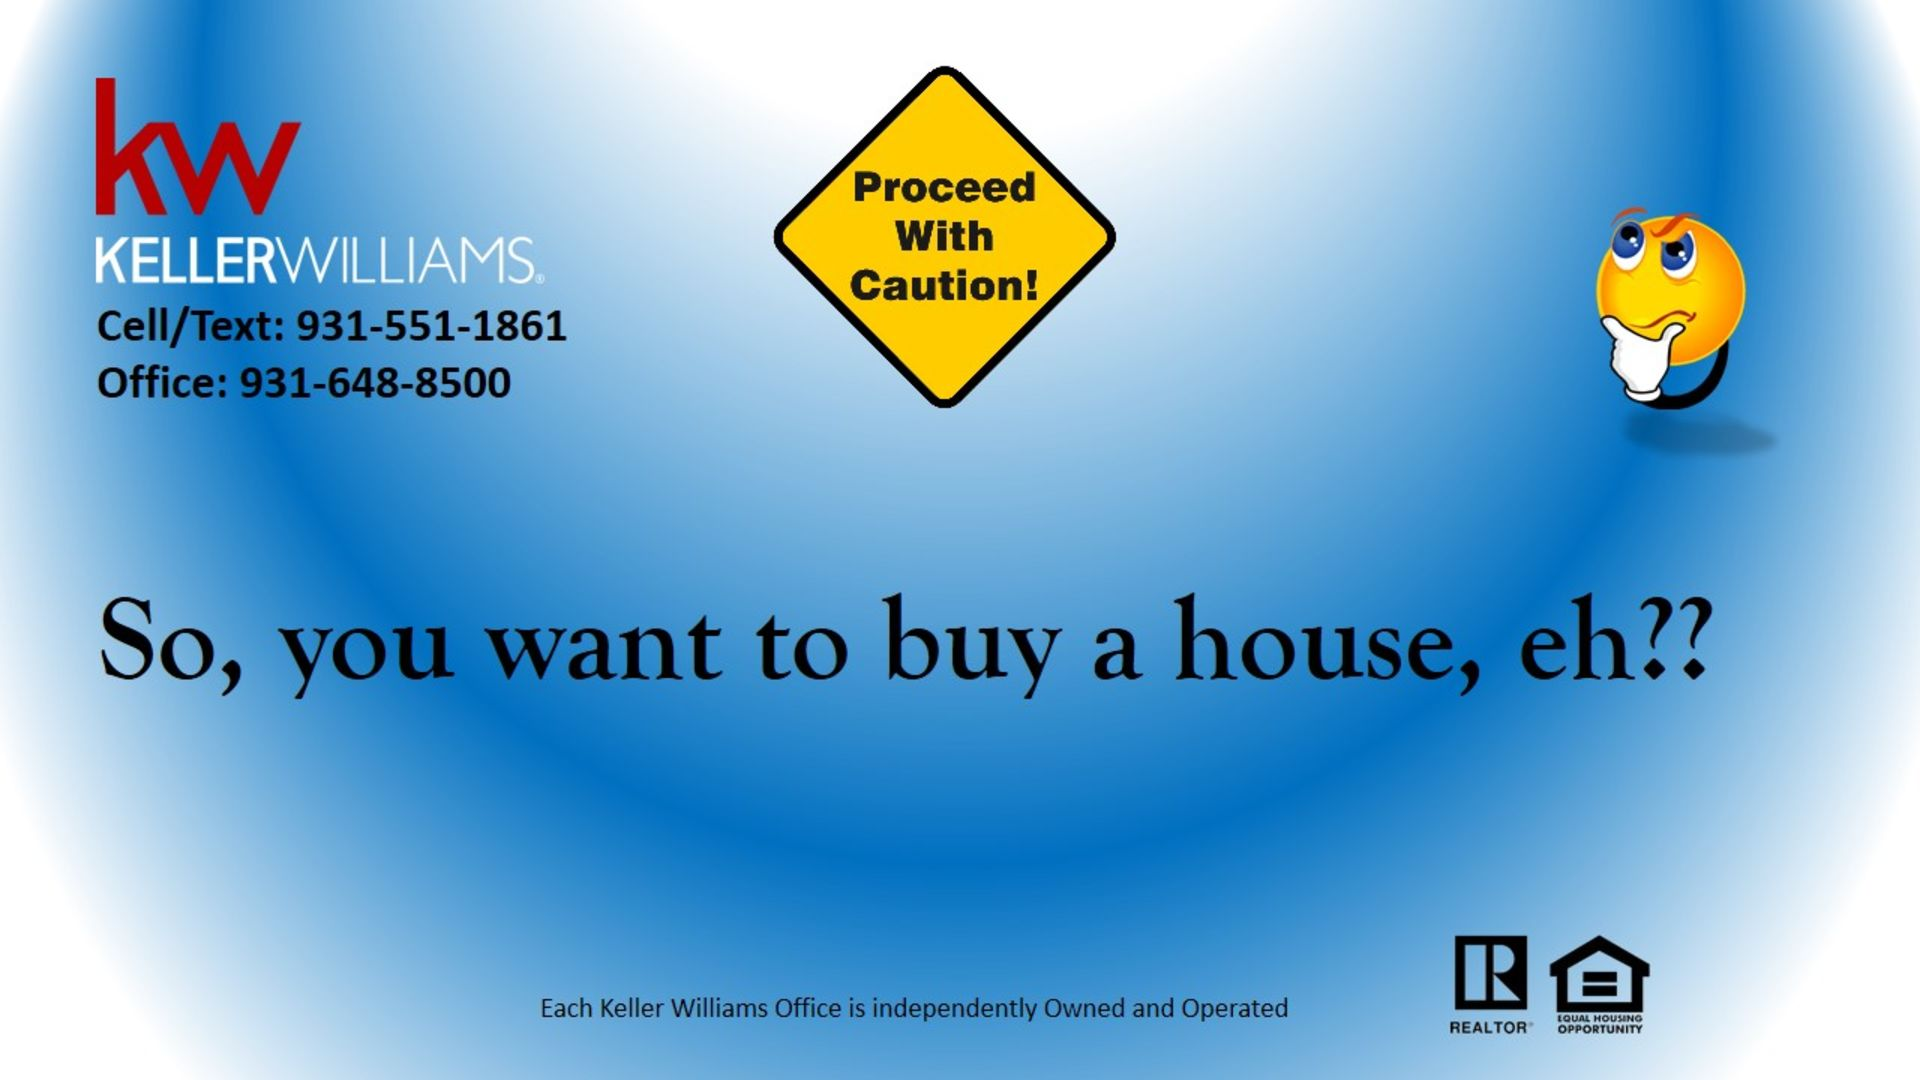 So, you want to buy a house, eh??